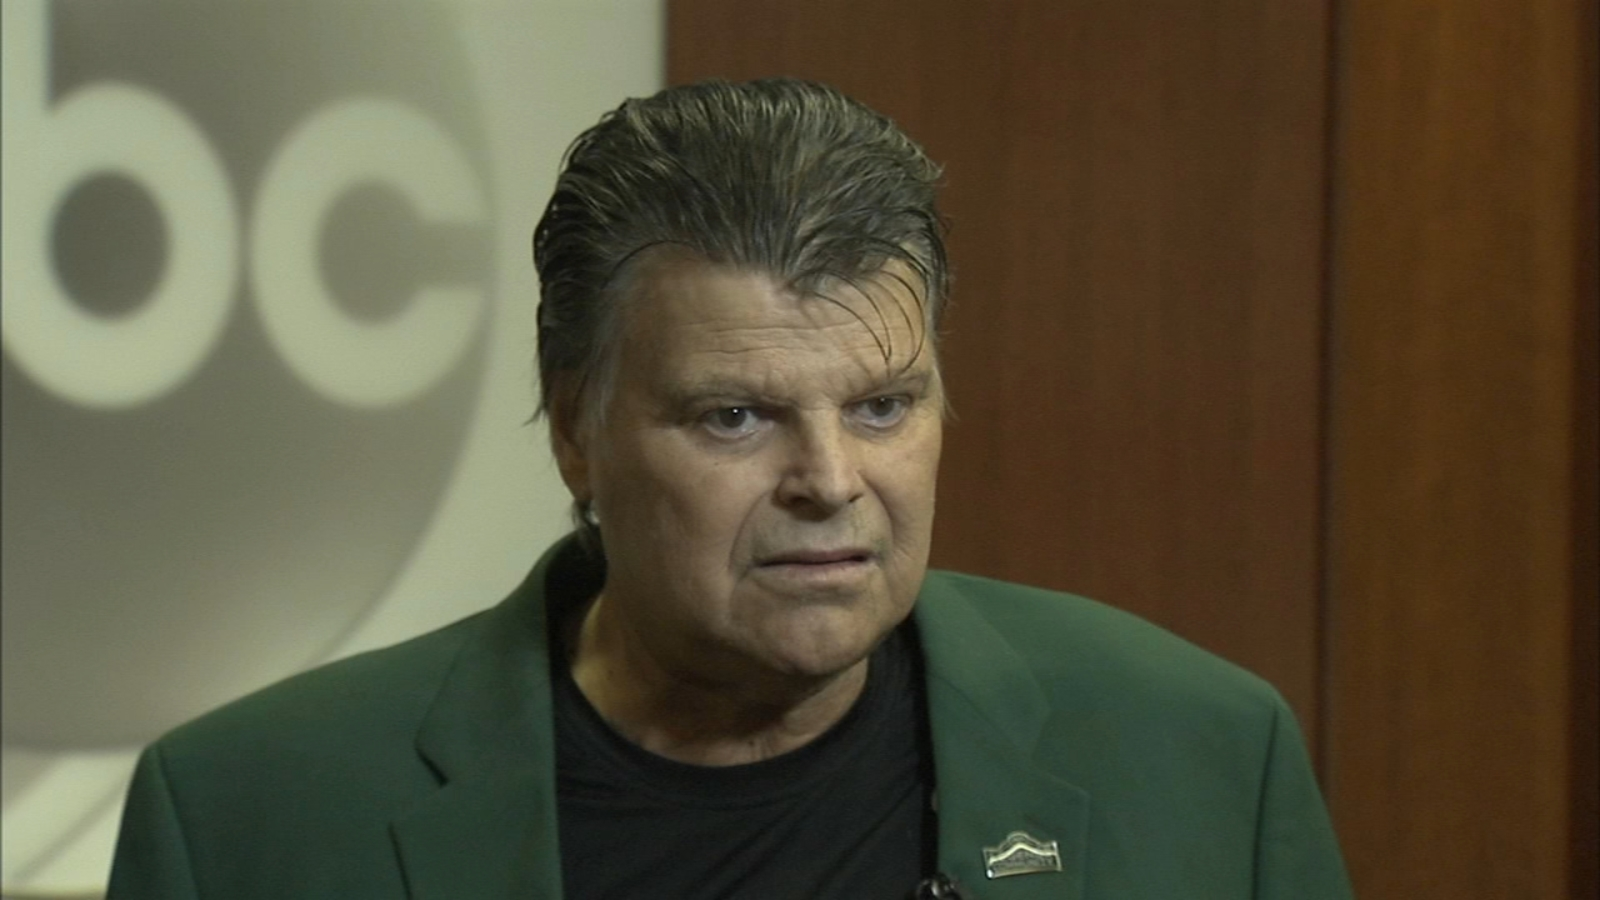 Former Nfl Star Mark Gastineau Shares Battle With Colon Cancer 6abc Philadelphia